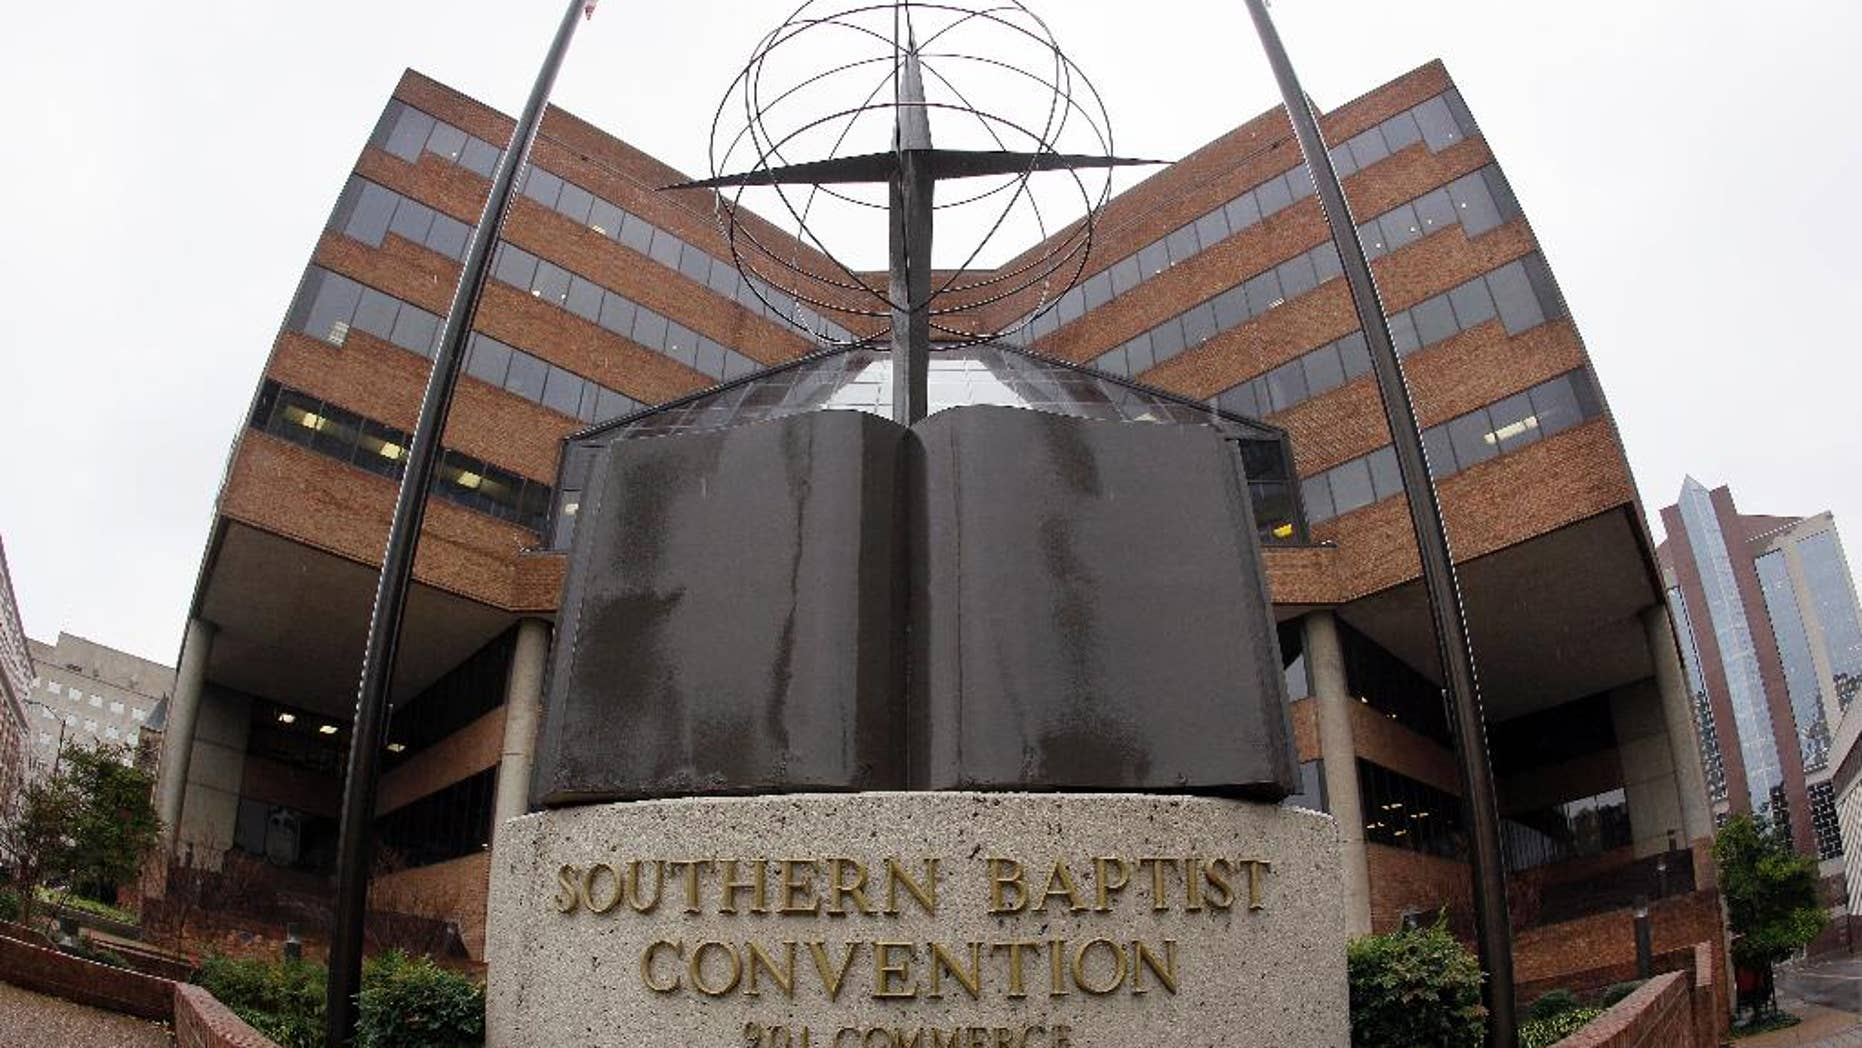 FILE -- This Dec. 7, 2011 file photo shows the headquarters of the Southern Baptist Convention in Nashville, Tenn. The Southern Baptists lost more than 200,000 members in 2015. It's the ninth straight year of decline for the nation's largest Protestant denomination, which also saw baptisms drop by more than 10,000 in 2015. (AP Photo/Mark Humphrey, File)